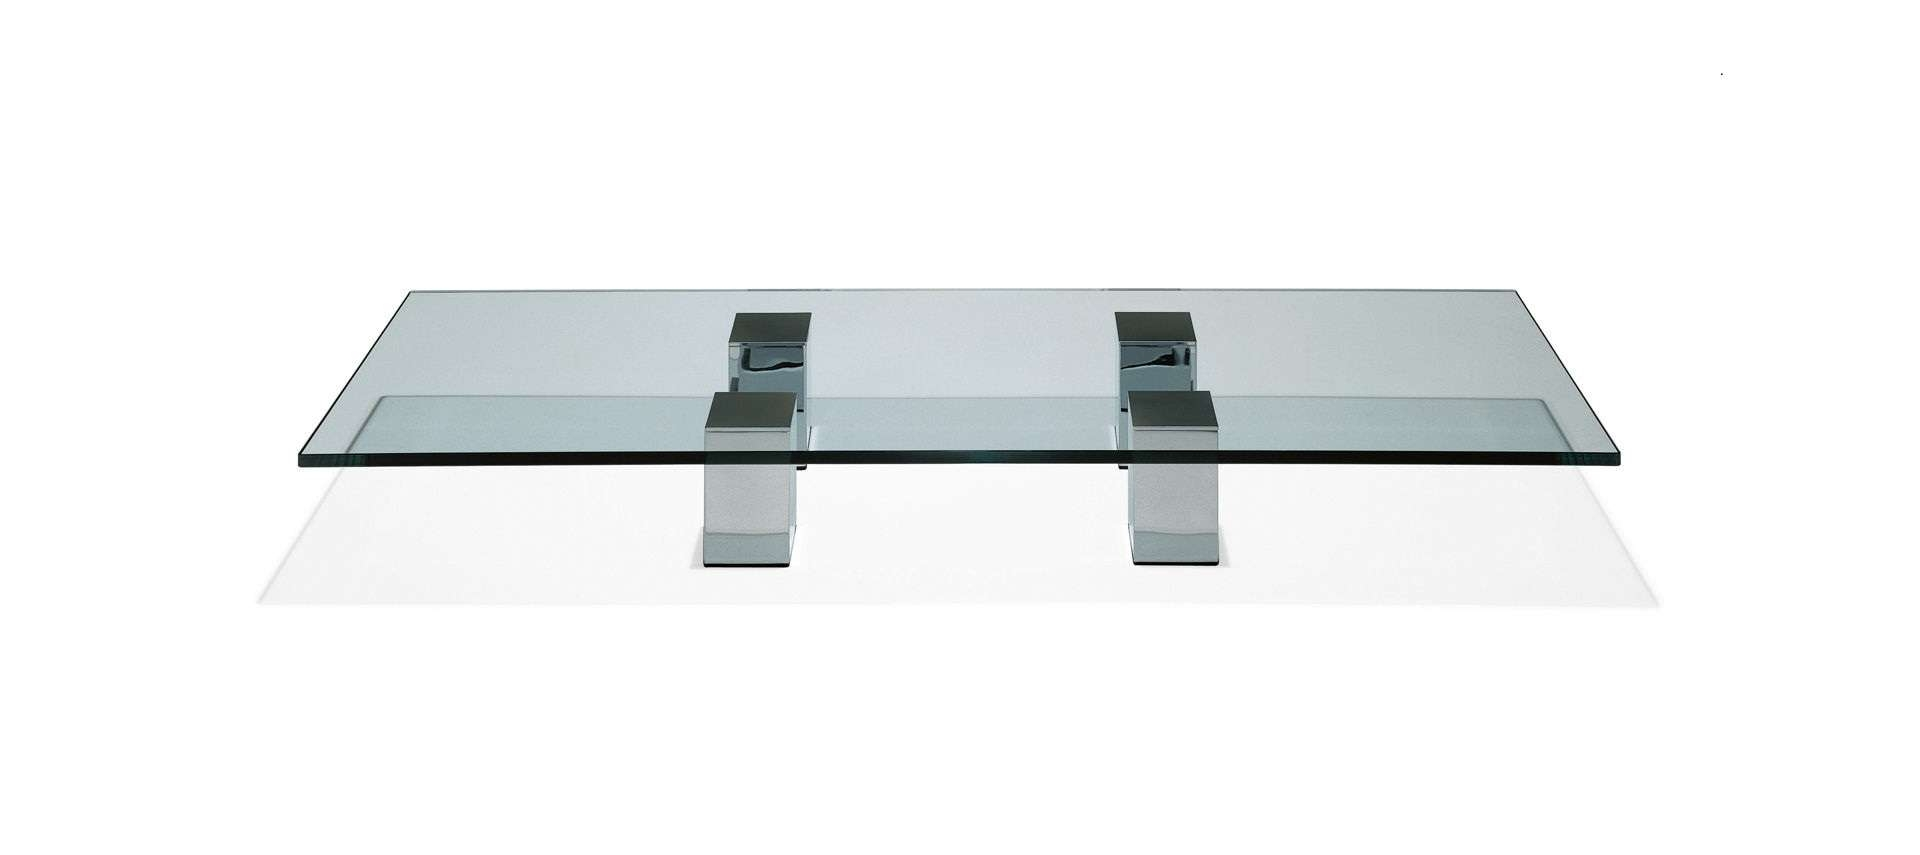 Captivating Low Glass Coffee Table Square – Low Glass Coffee Table Pertaining To Favorite Low Level Coffee Tables (View 4 of 20)